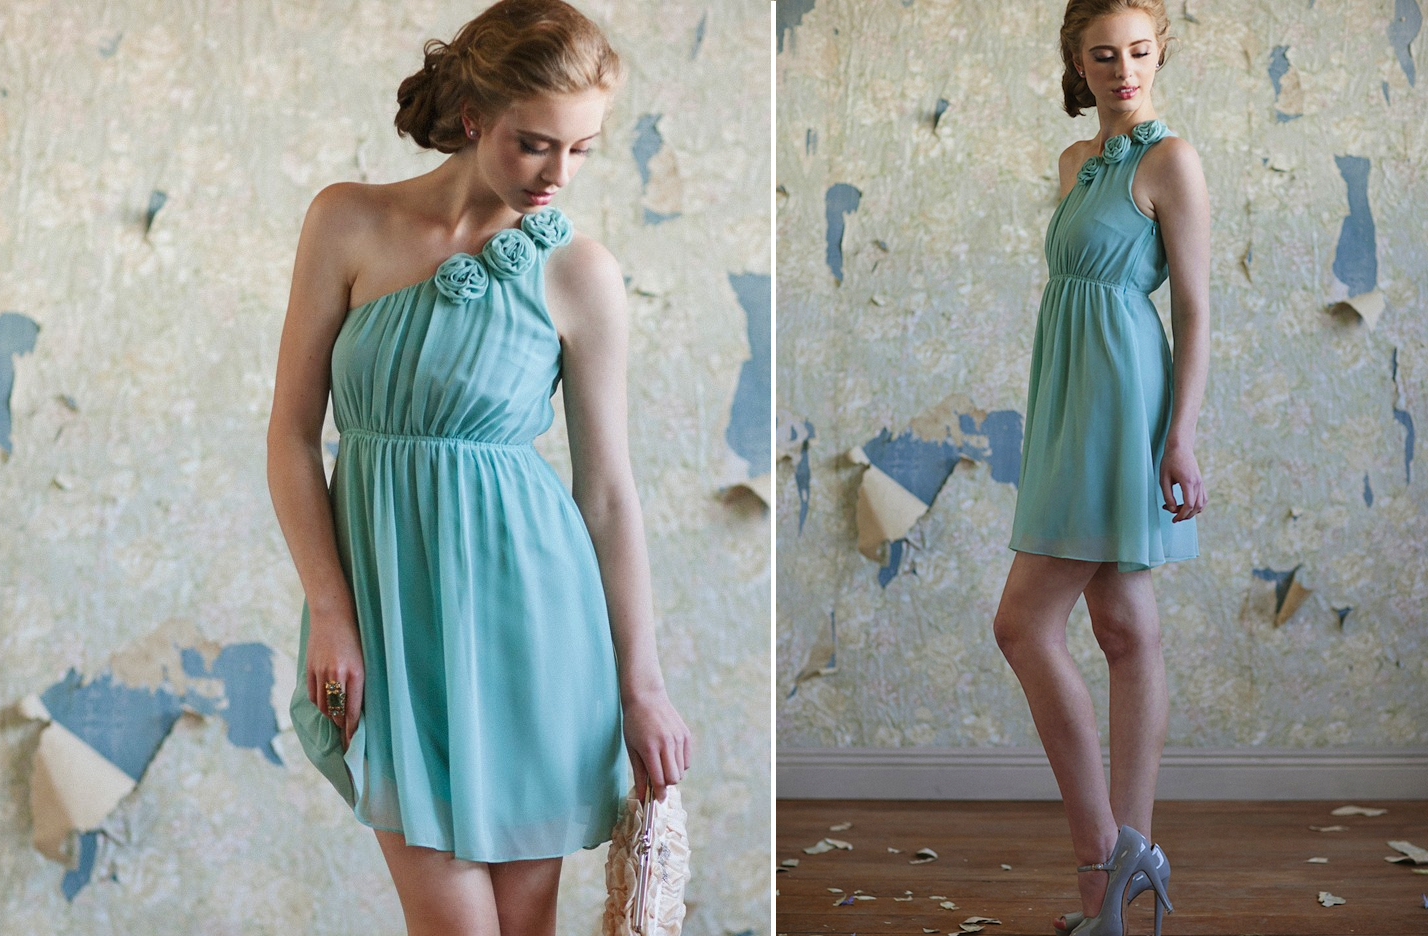 Ruche-bridesmaids-dresses-stylish-bridal-party-attire-aqua.original